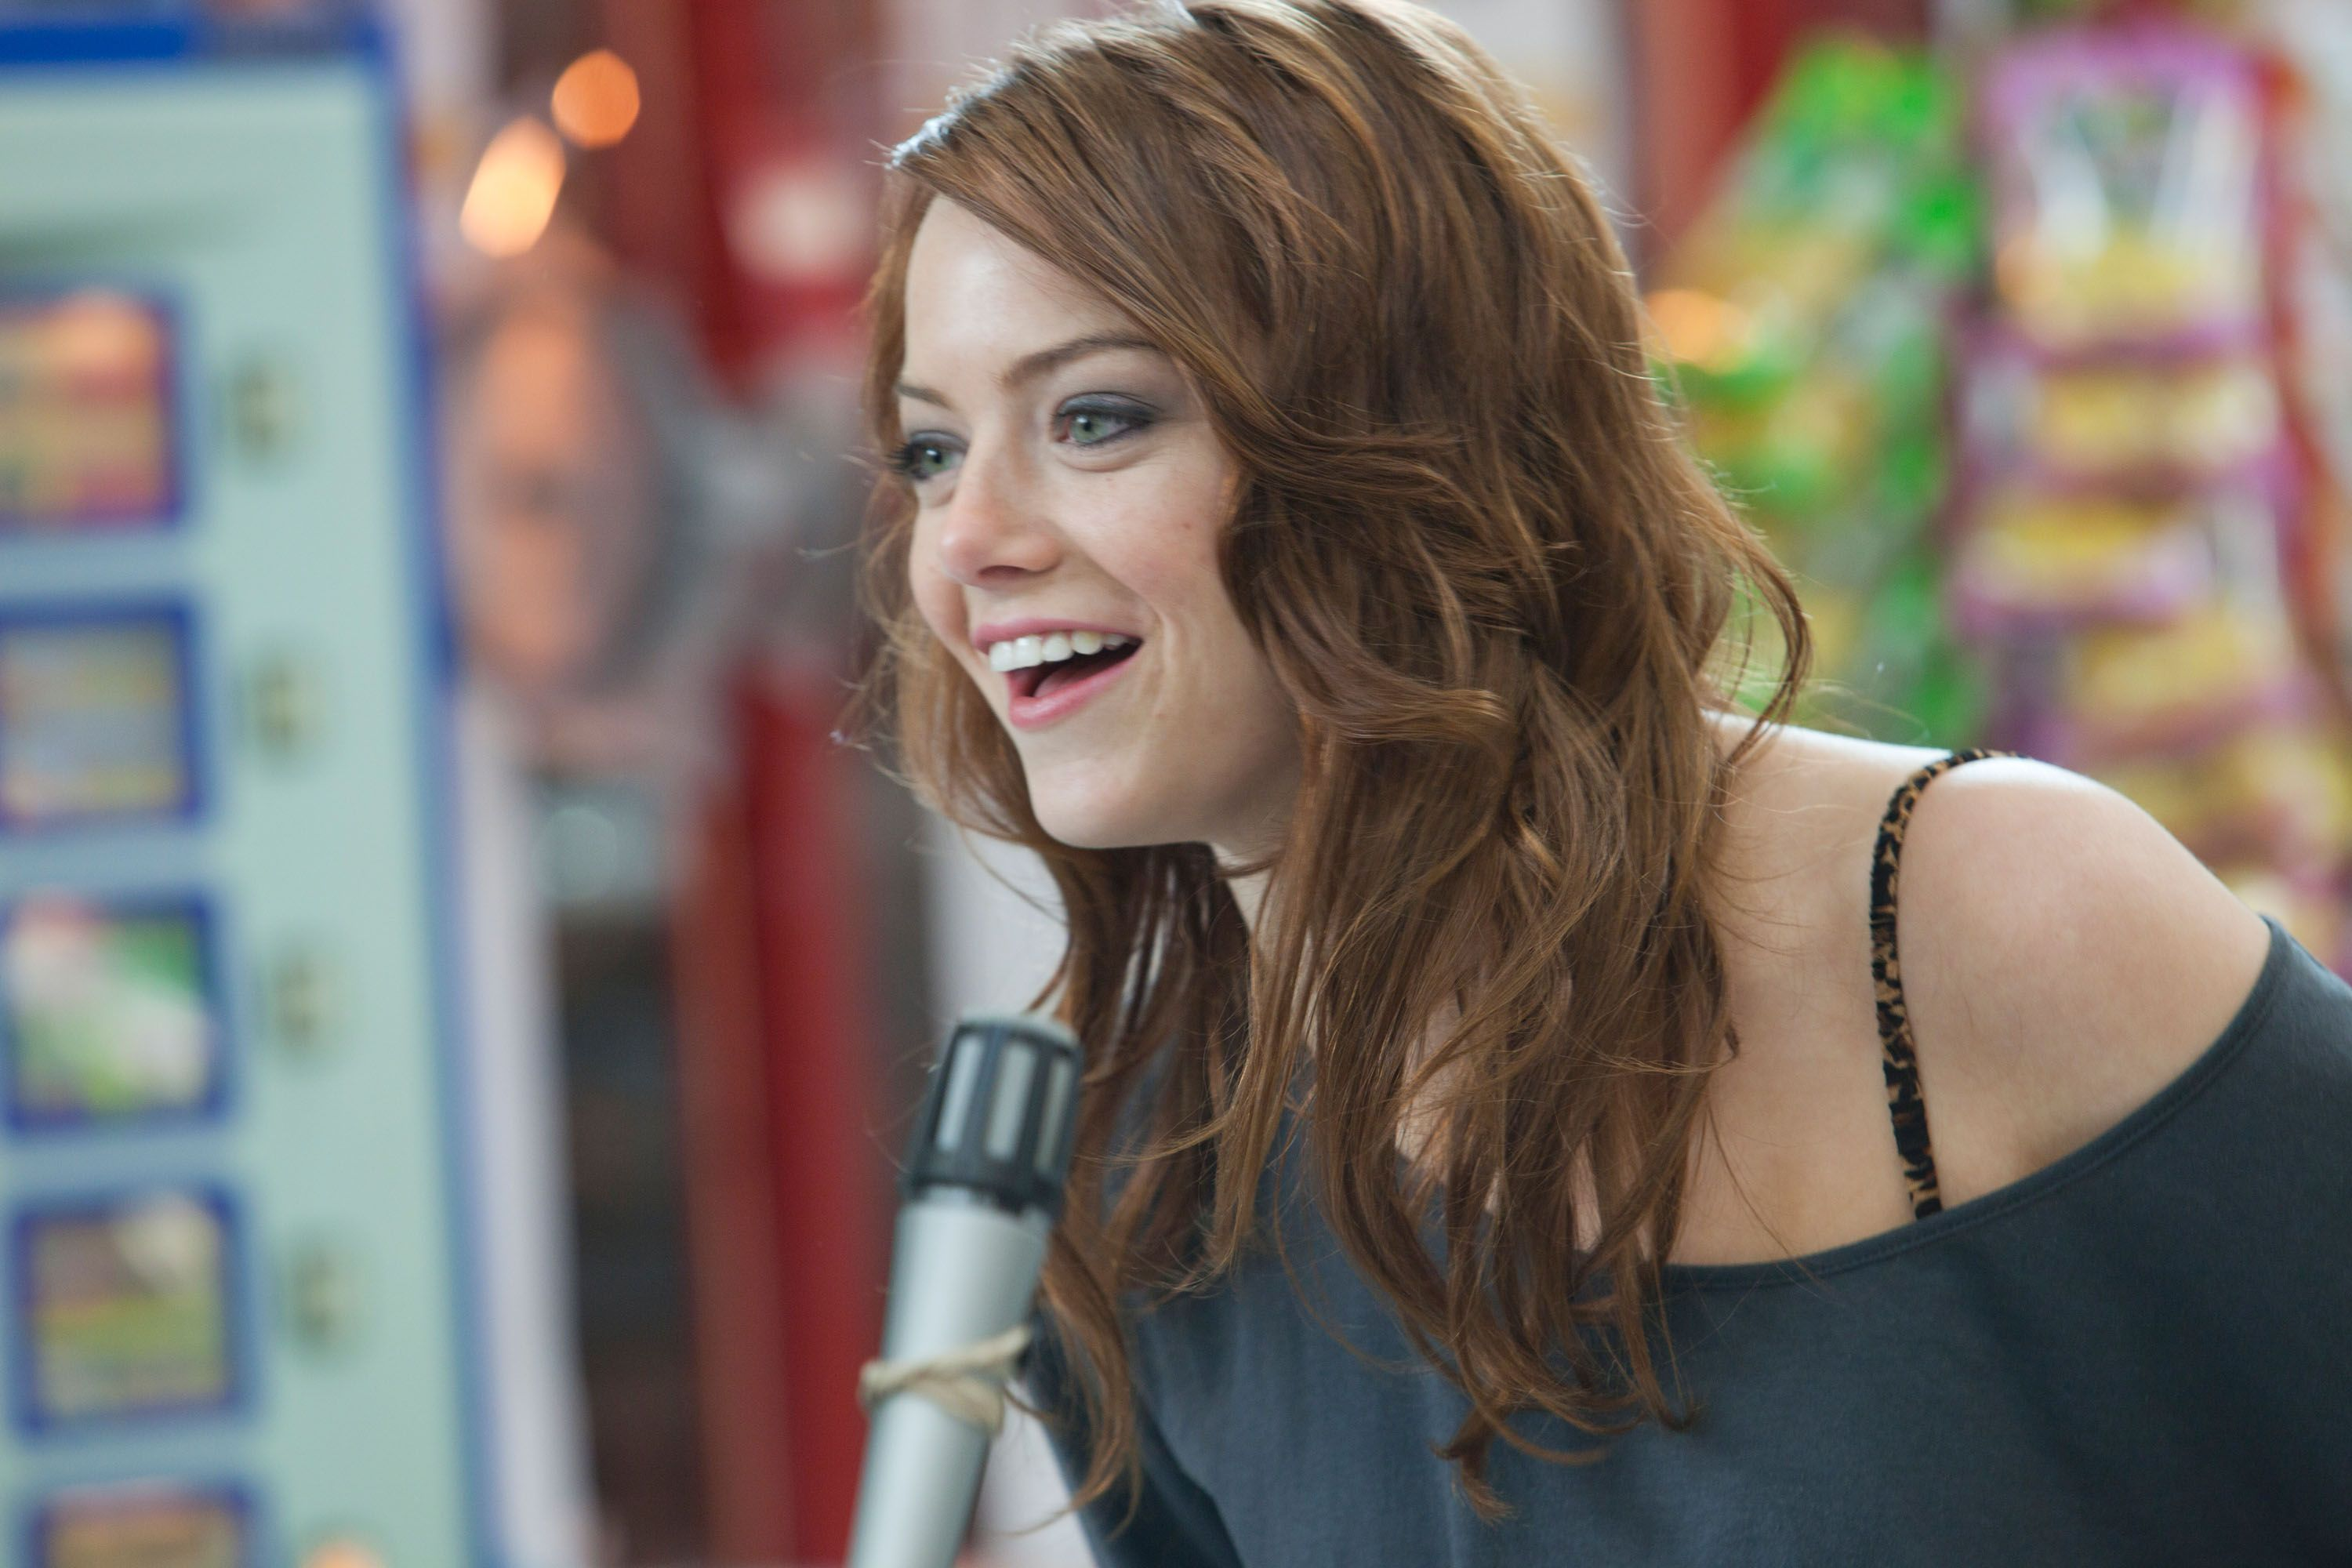 MOVIE 43 Images Featuring Emma Stone, Hugh Jackman ... Emma Stone Movies